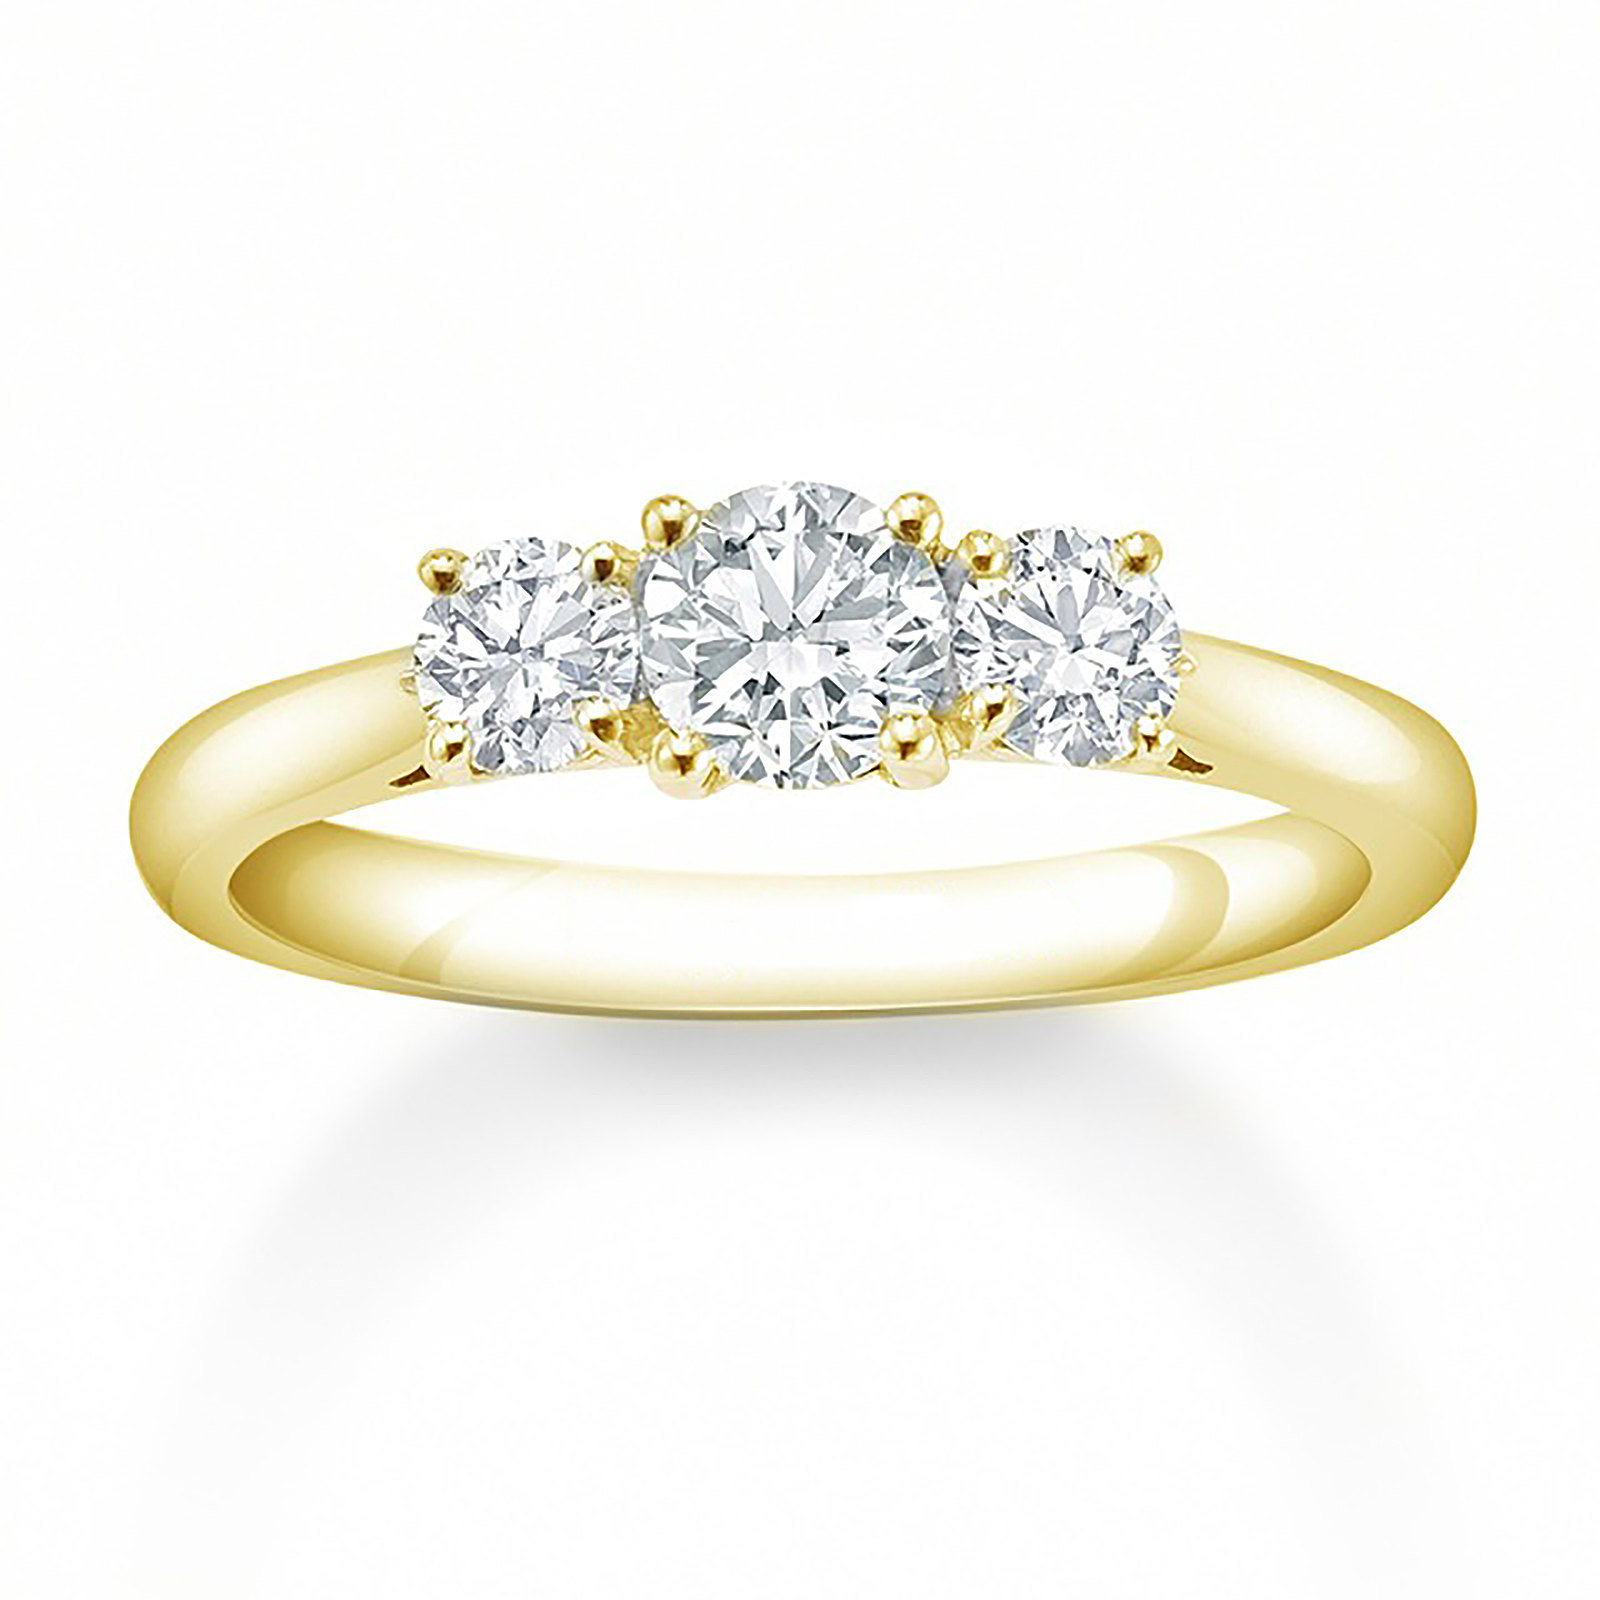 carats gabrielle rings type carat metal diamond stone of gold white en wedding yellow ring